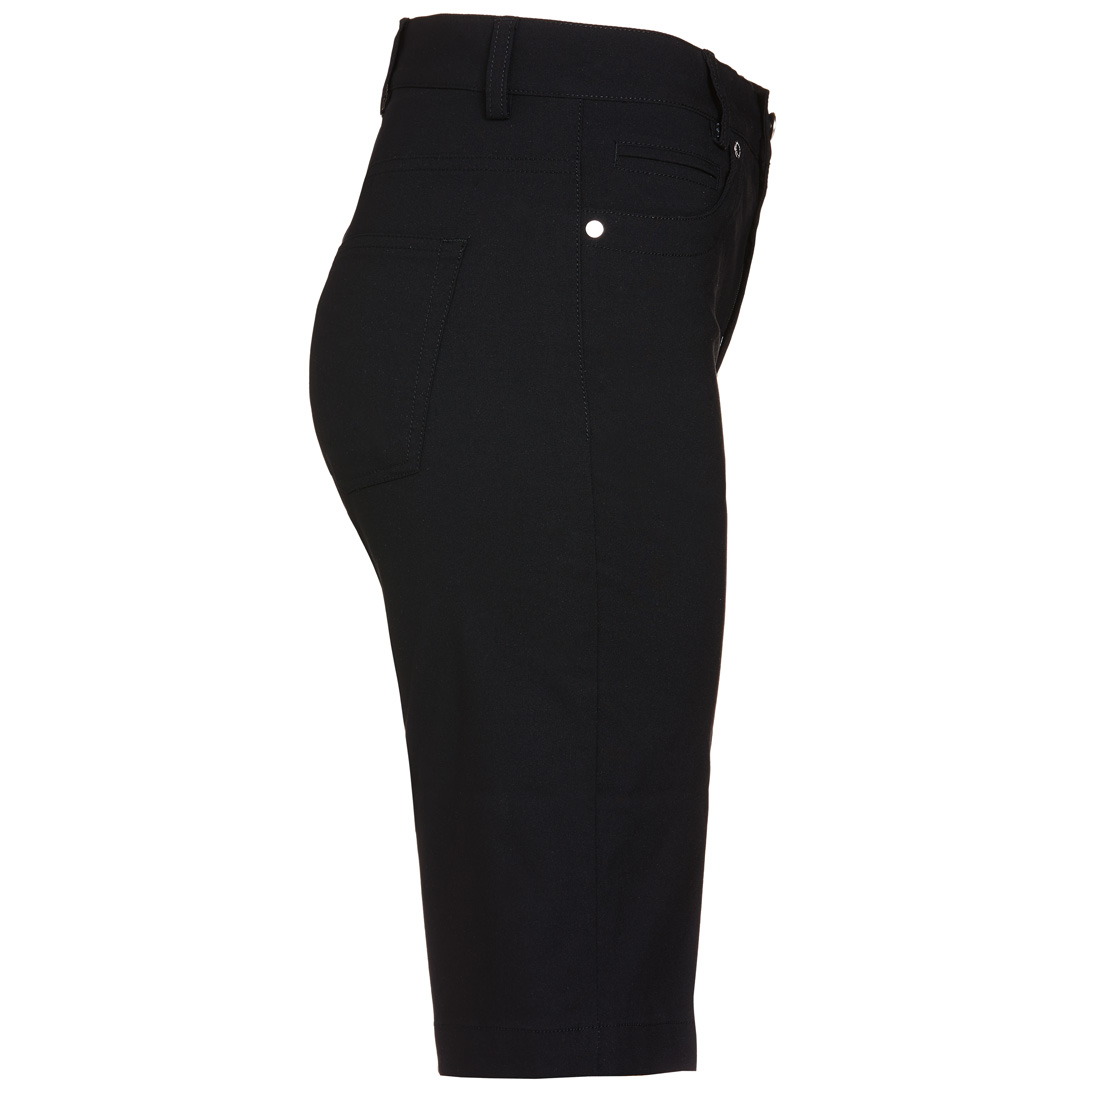 Leichte Techno Stretch Bermuda